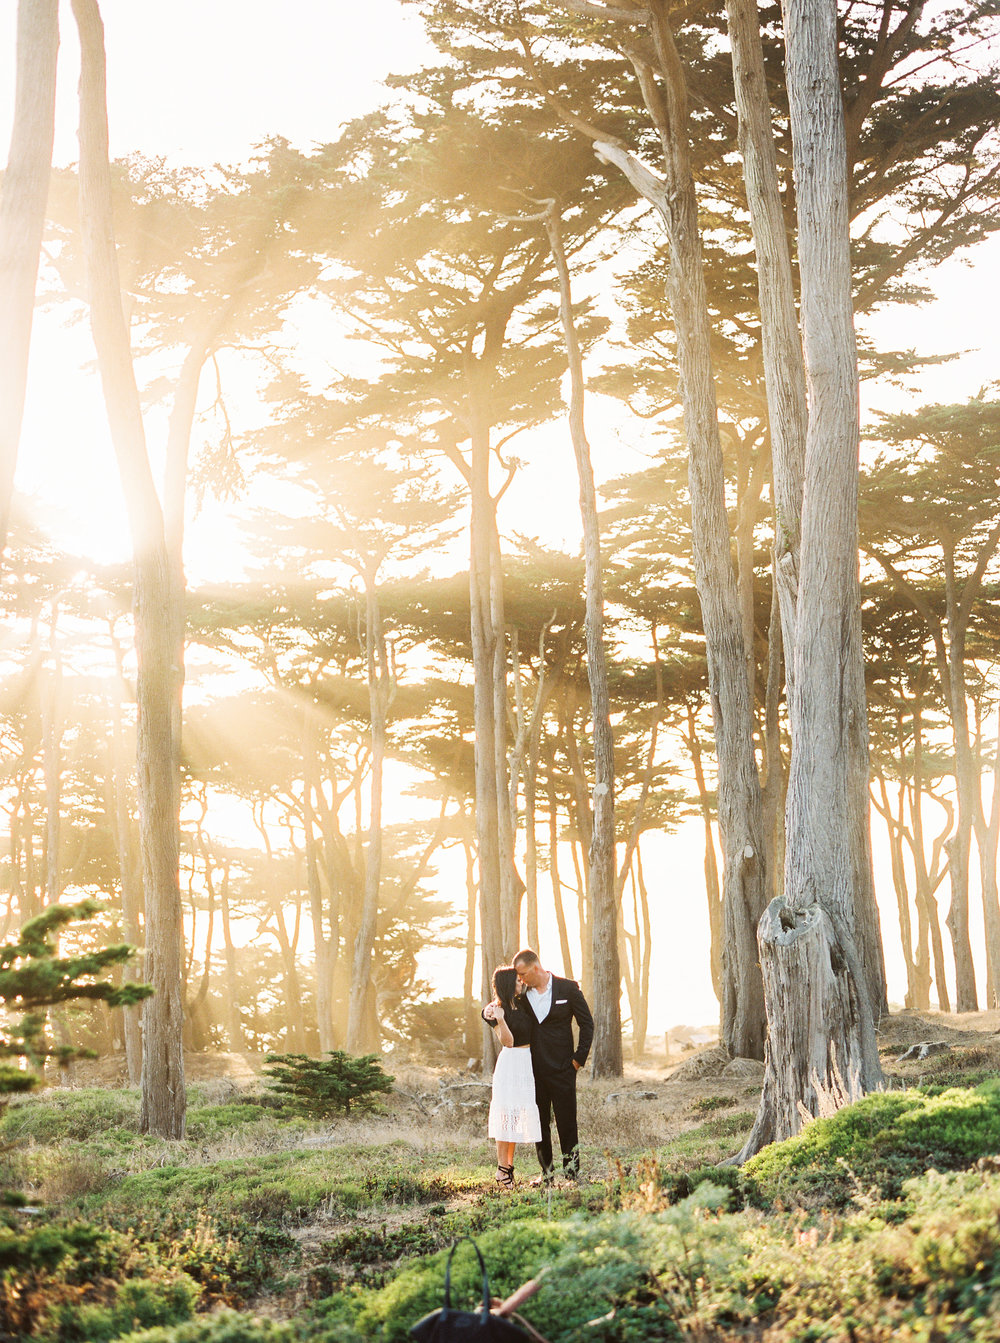 Suto-baths-engagement-photography-23.jpg